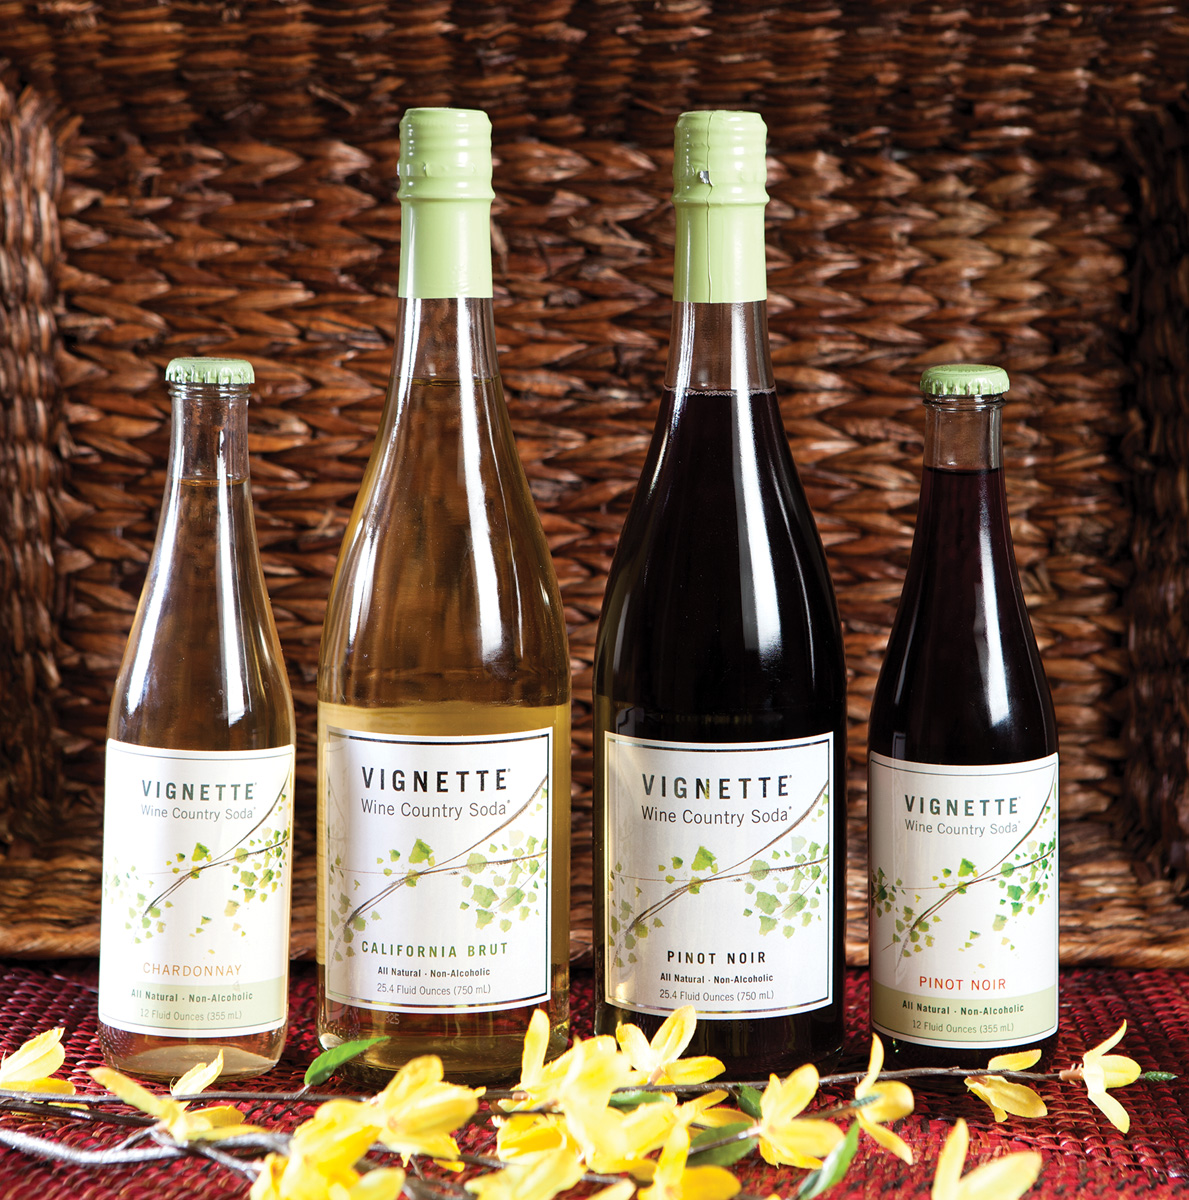 Vignette's Wine Country Soda